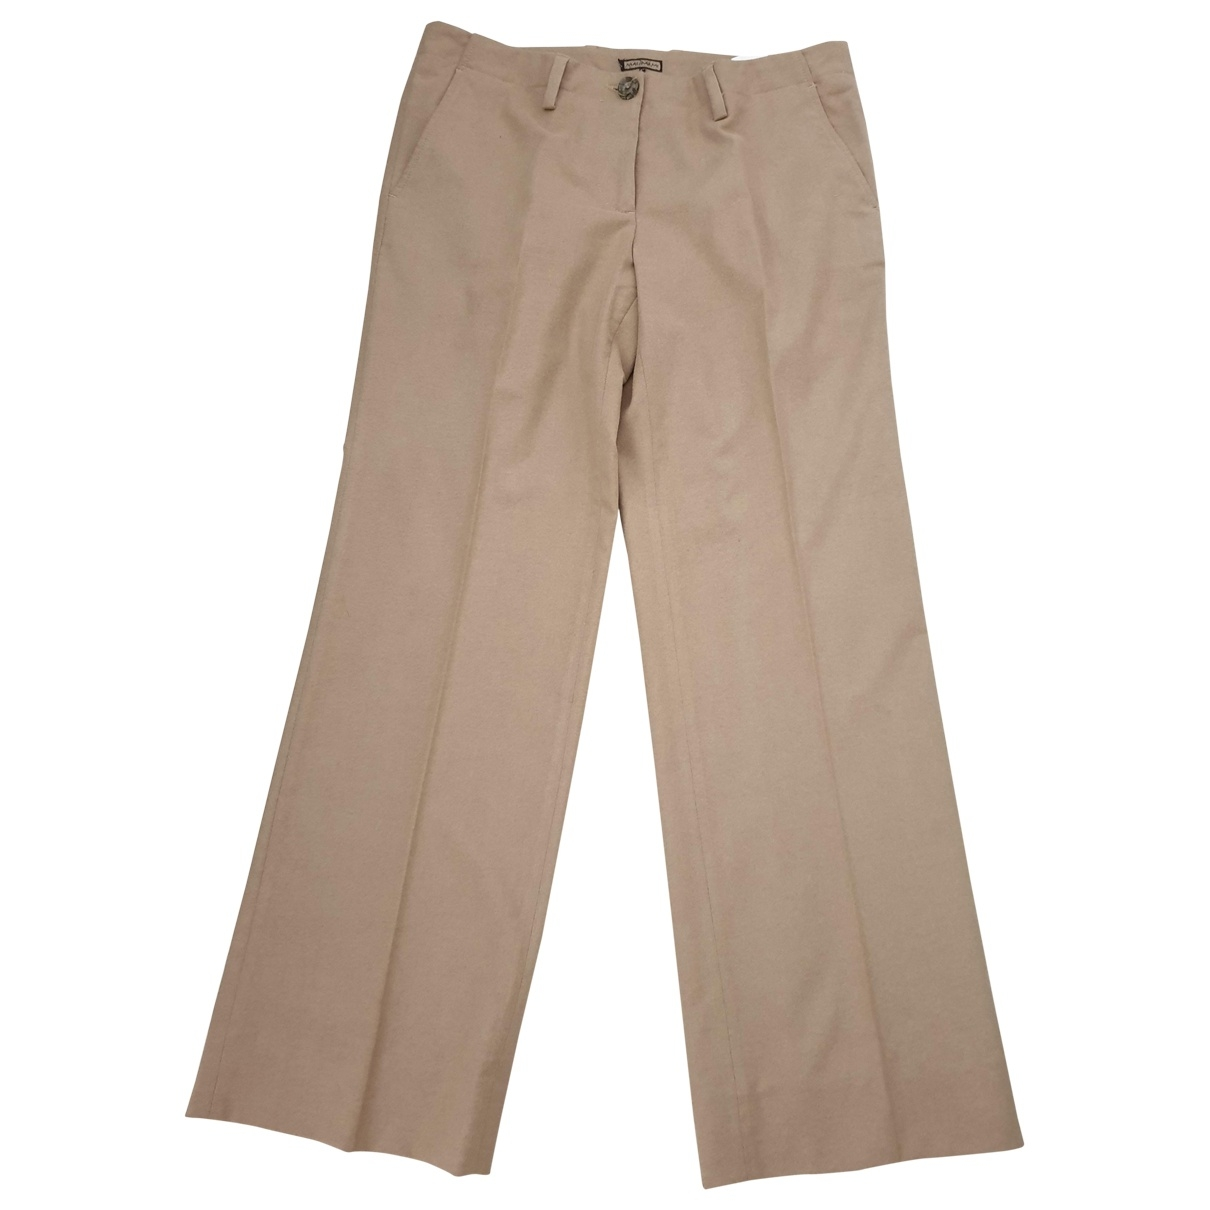 Maliparmi \N Beige Trousers for Women 44 IT